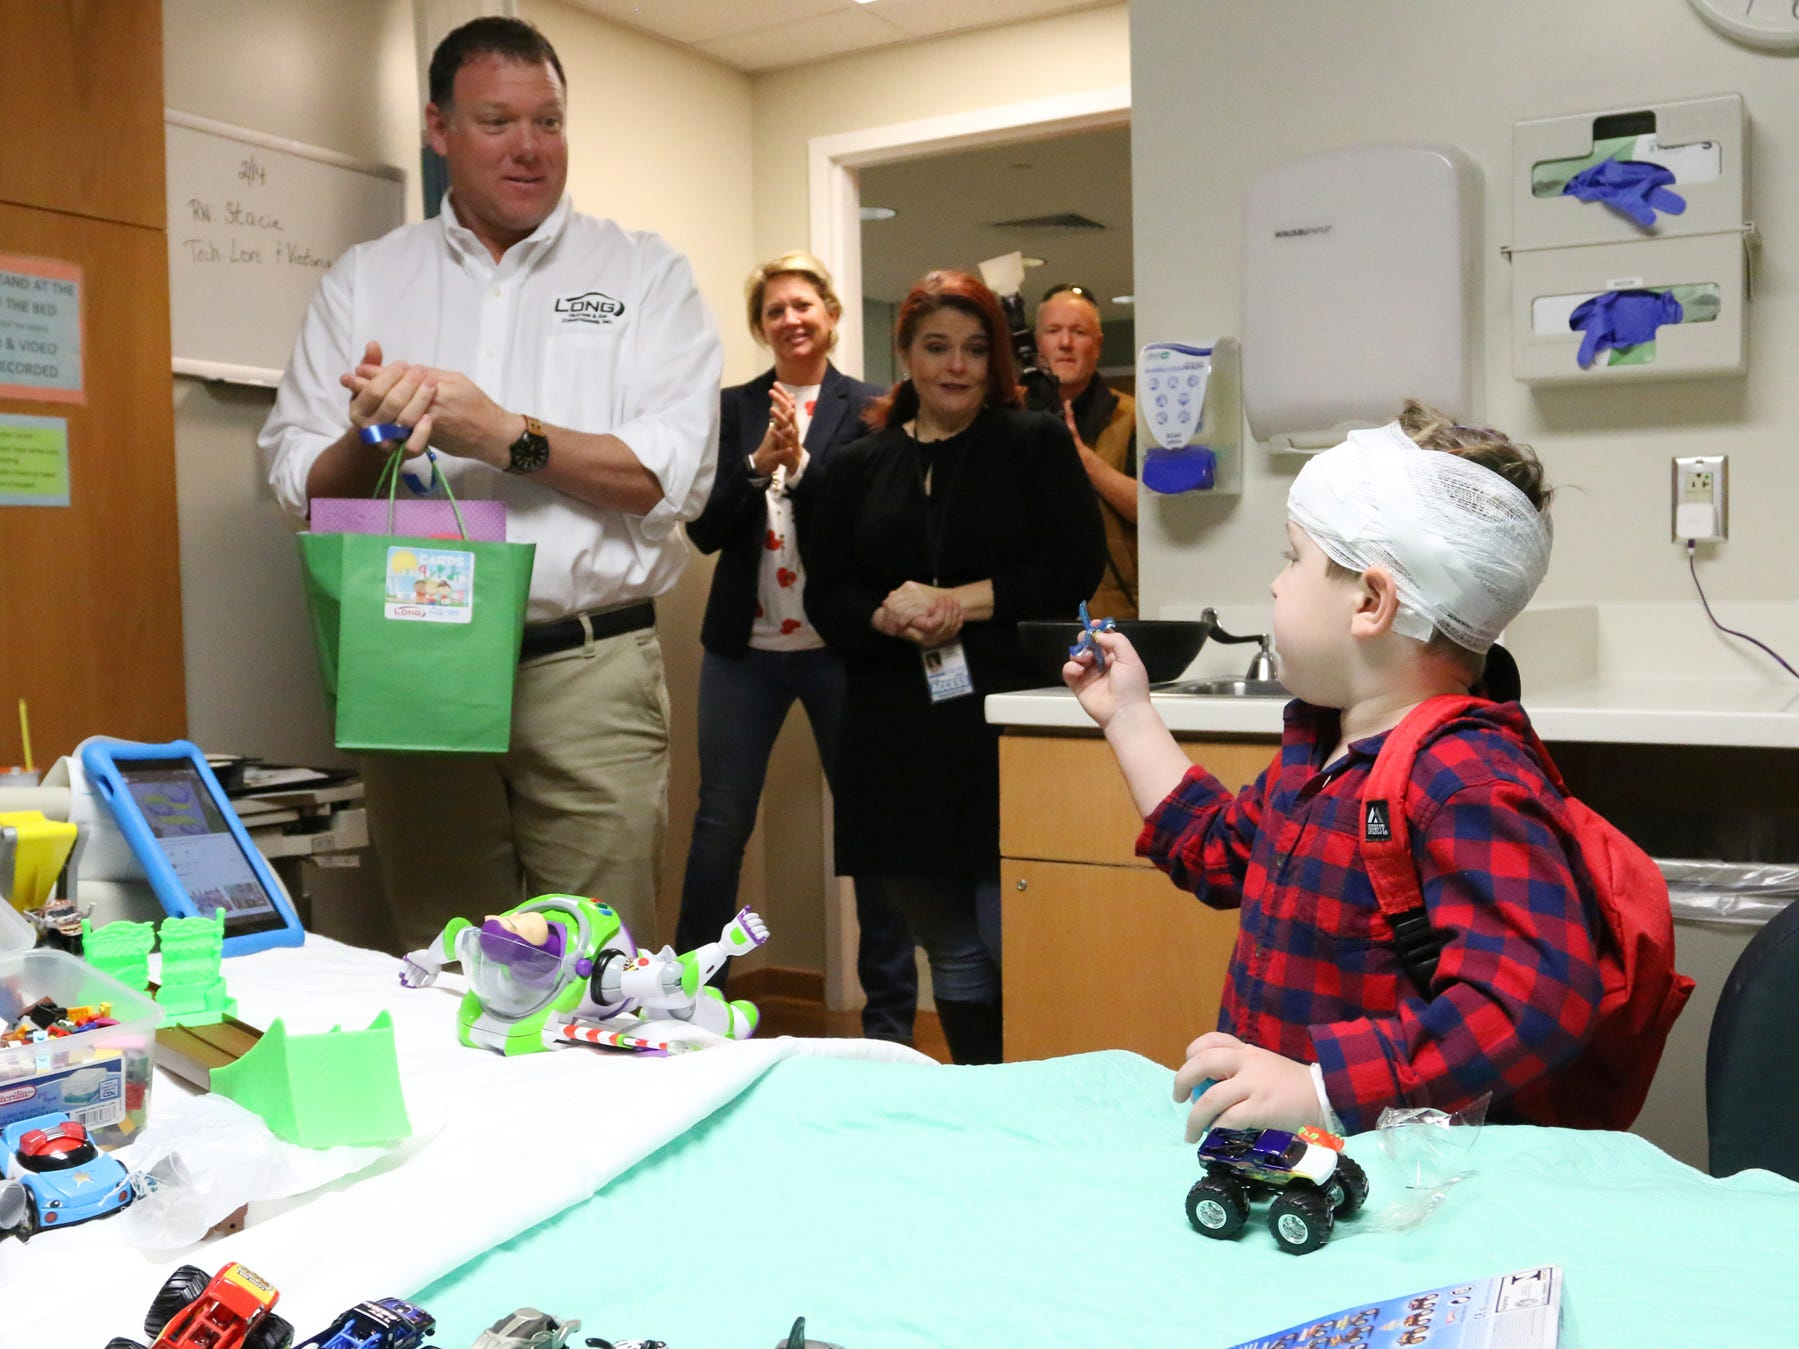 Andy Long, owner and president of Long Heating and Air Conditioning, left, brings Valentine's Day cards to Connor at the Prisma Health Children's Hospital.